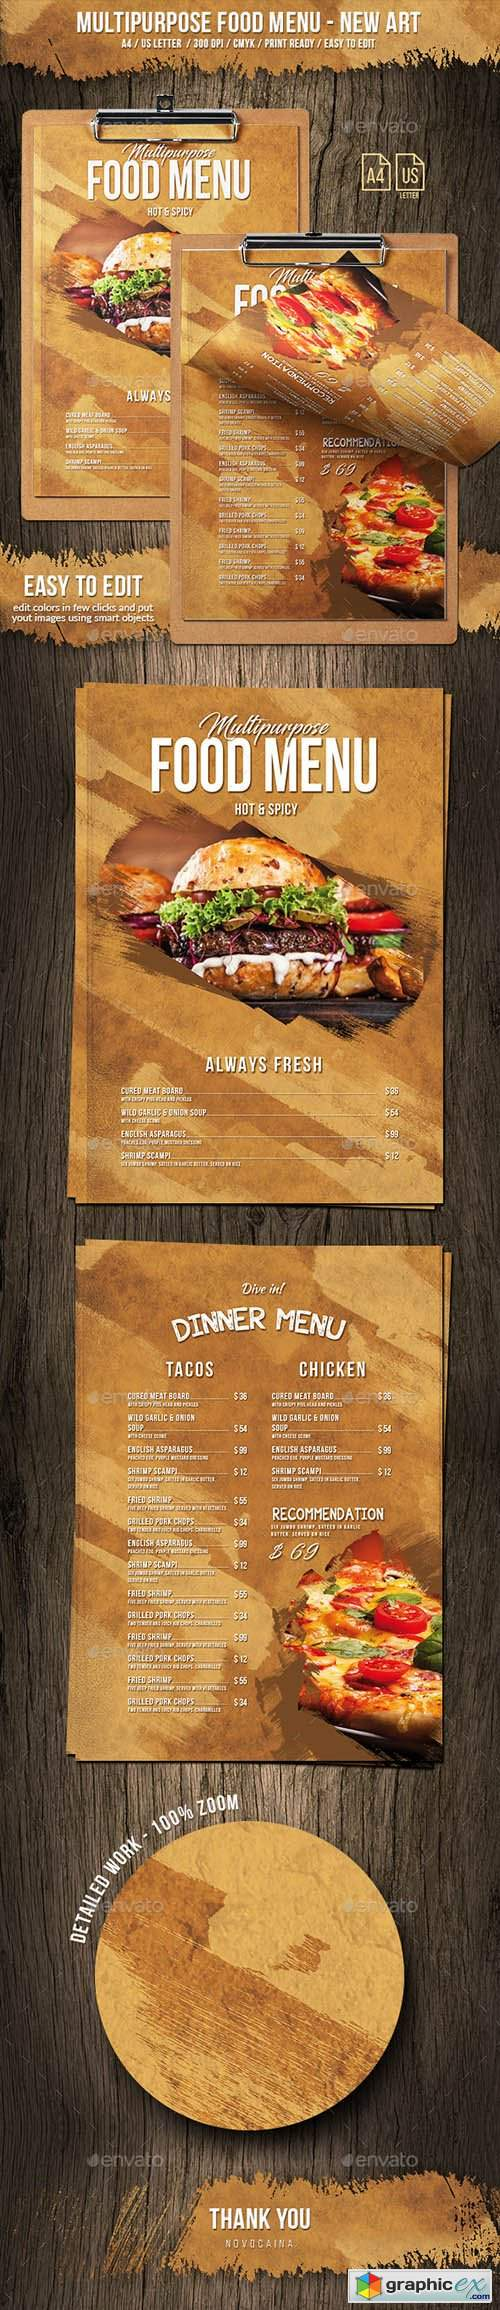 Multipurpose Food Menu - New Art - A4 & US Letter